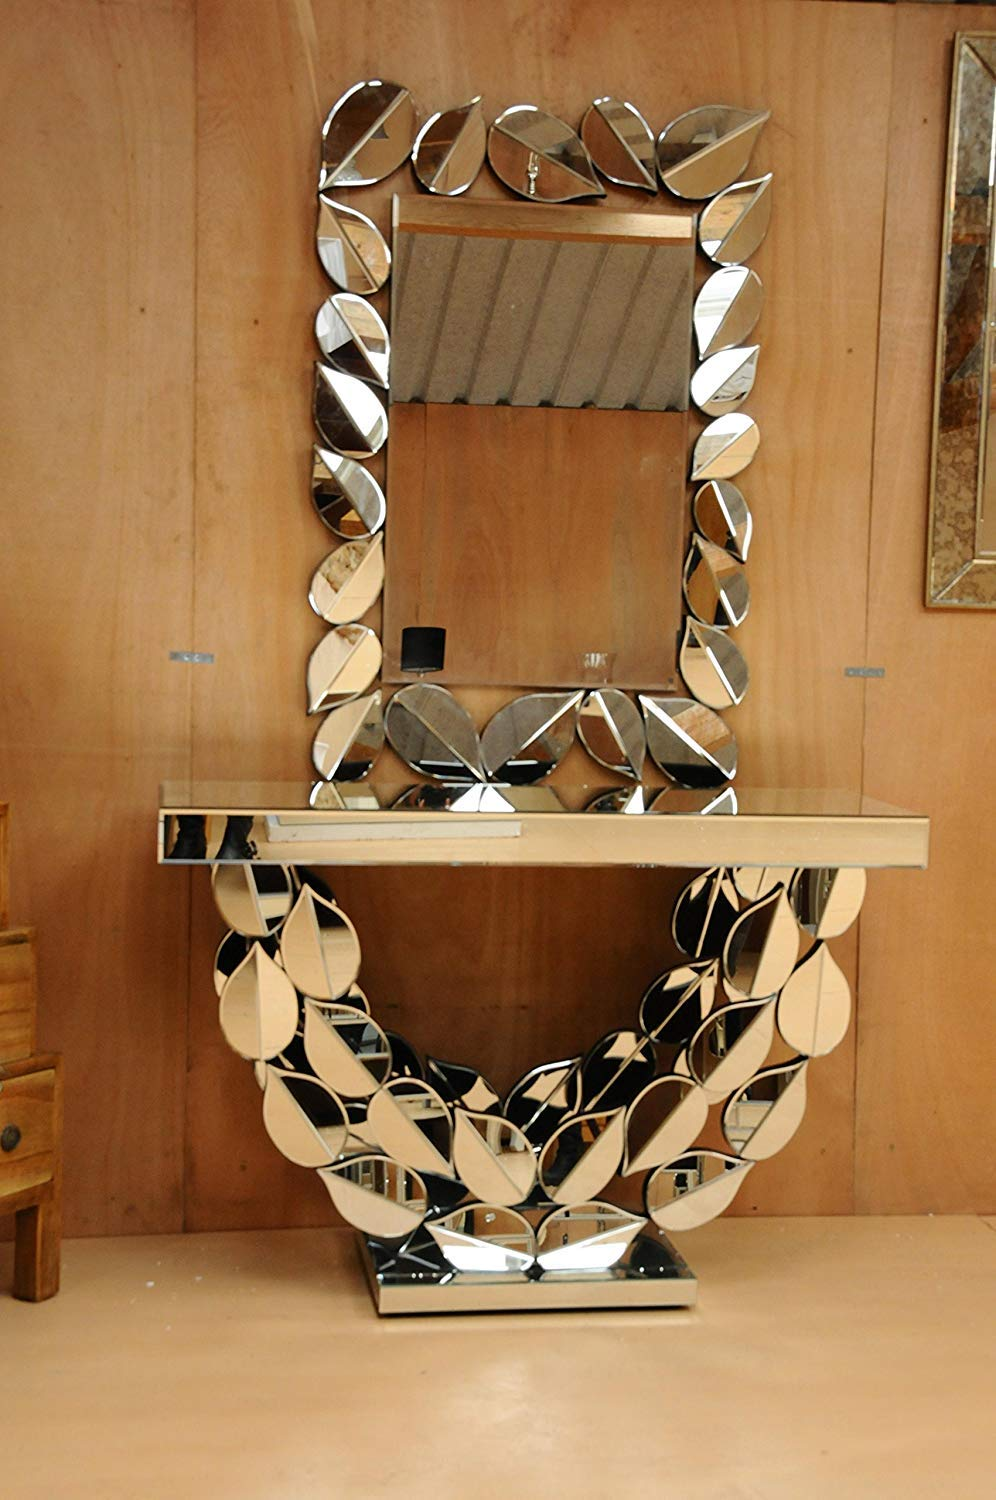 Buy Alfa Design Wall Mounted Console Table With Mirror Decor For The Living Room Bedroom Wall Mirror Wood Core Backing 12mm Mdf Mirror Size 42 X 30 Table L 36 X W 14